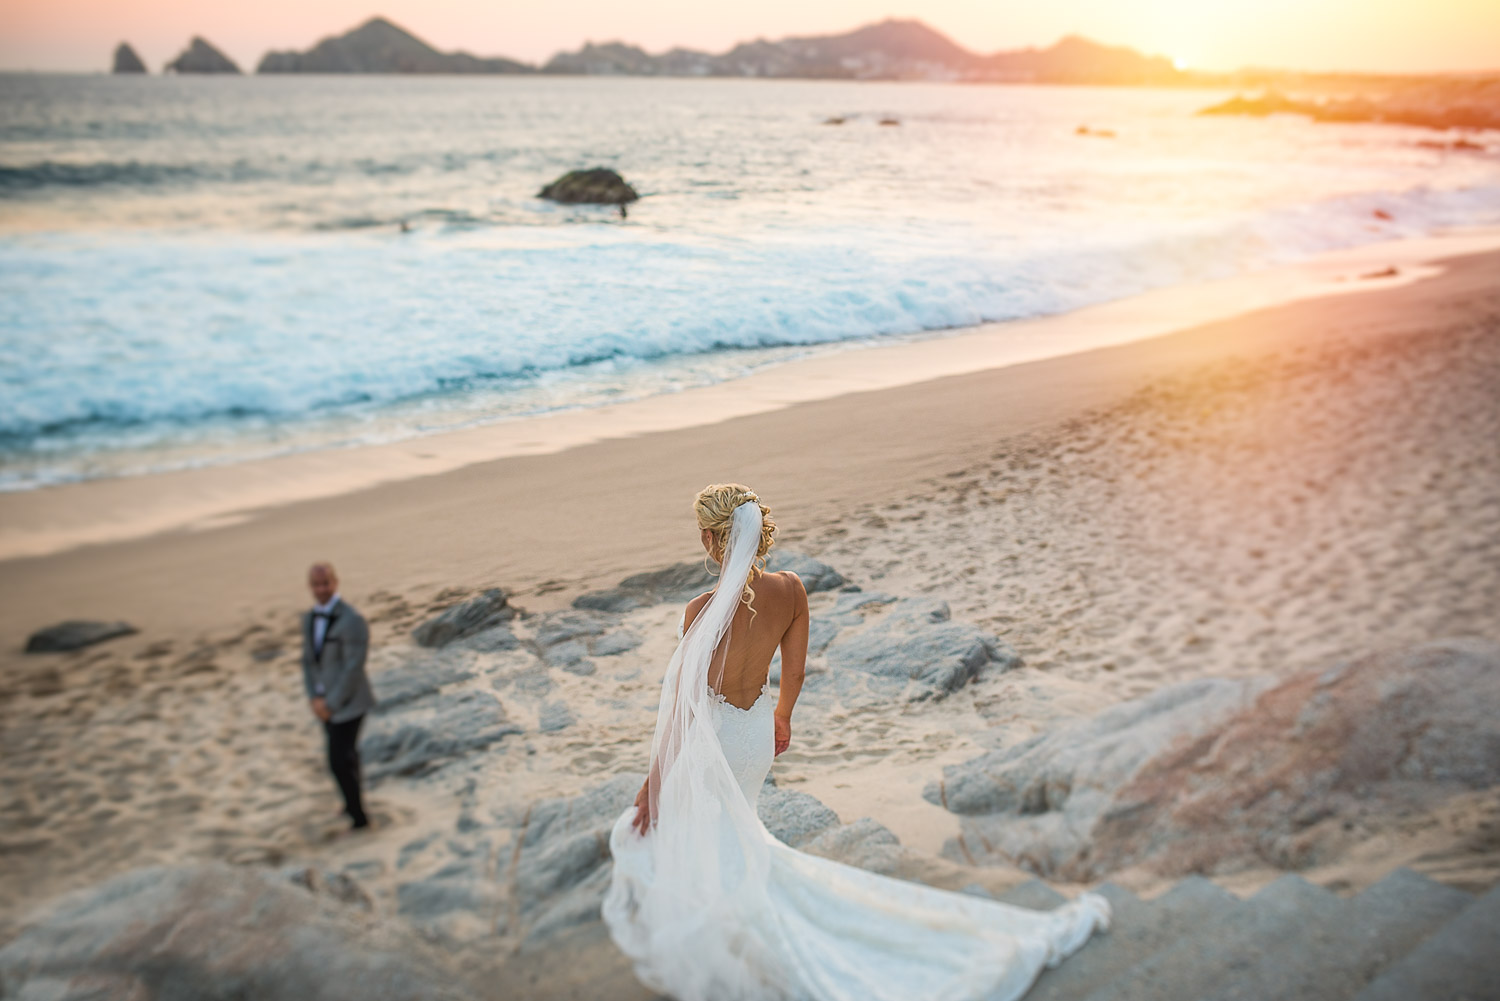 Gorgous bride standing on the rocks, grooms is behind on the beach and behind them is the ocean and the famous Cabo Arch of Cabo San Lucas